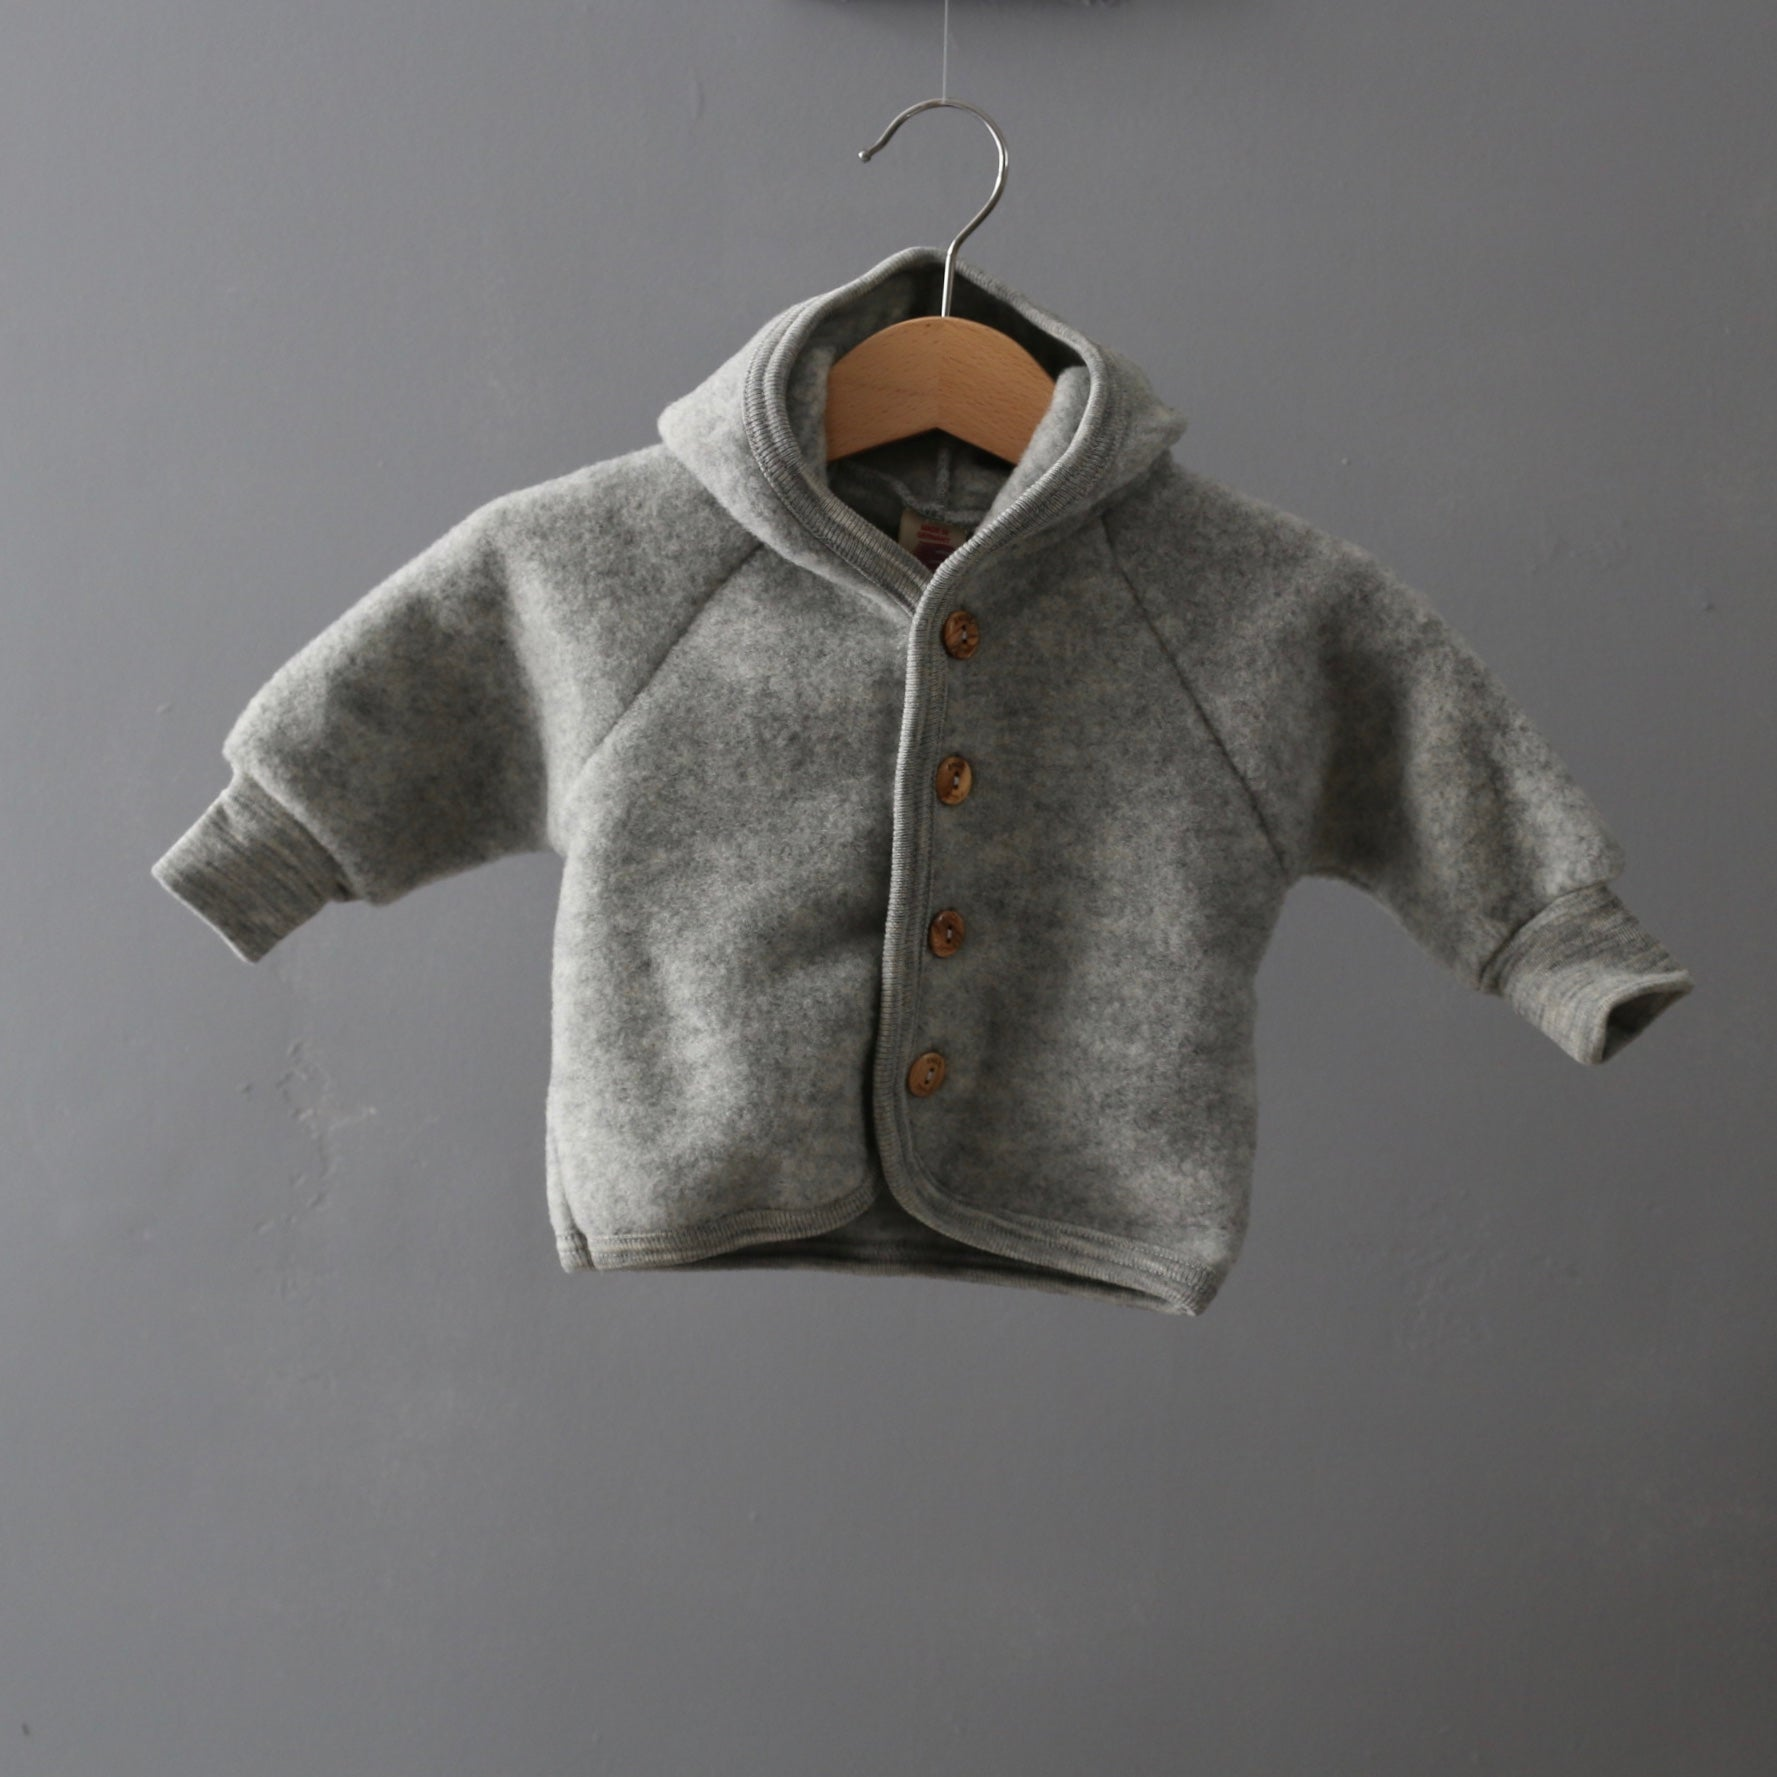 Soft Merino Wool Fleece Jacket Grey Melange 0m 2y Arbre Bleu